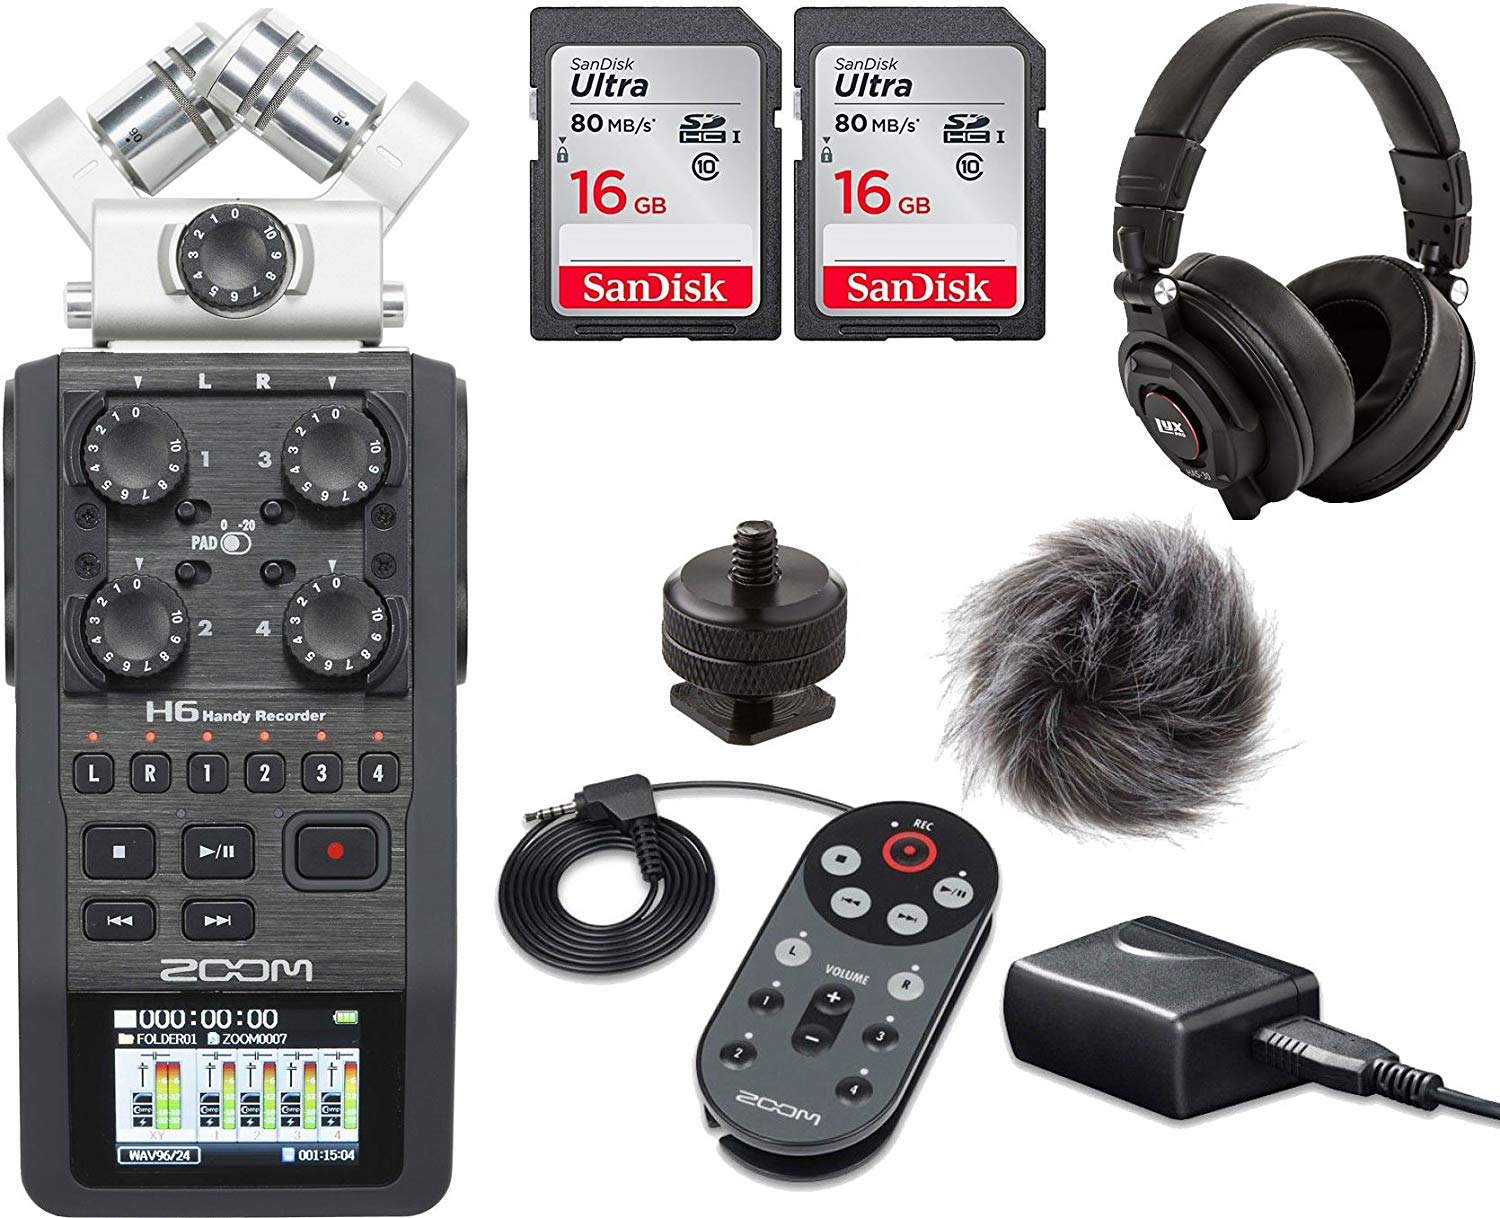 Zoom H6 Six-Track Portable Recorder Handy Recorder Portable Digital Audio Recorder - Accessory Kit and a LyxPro Headphones